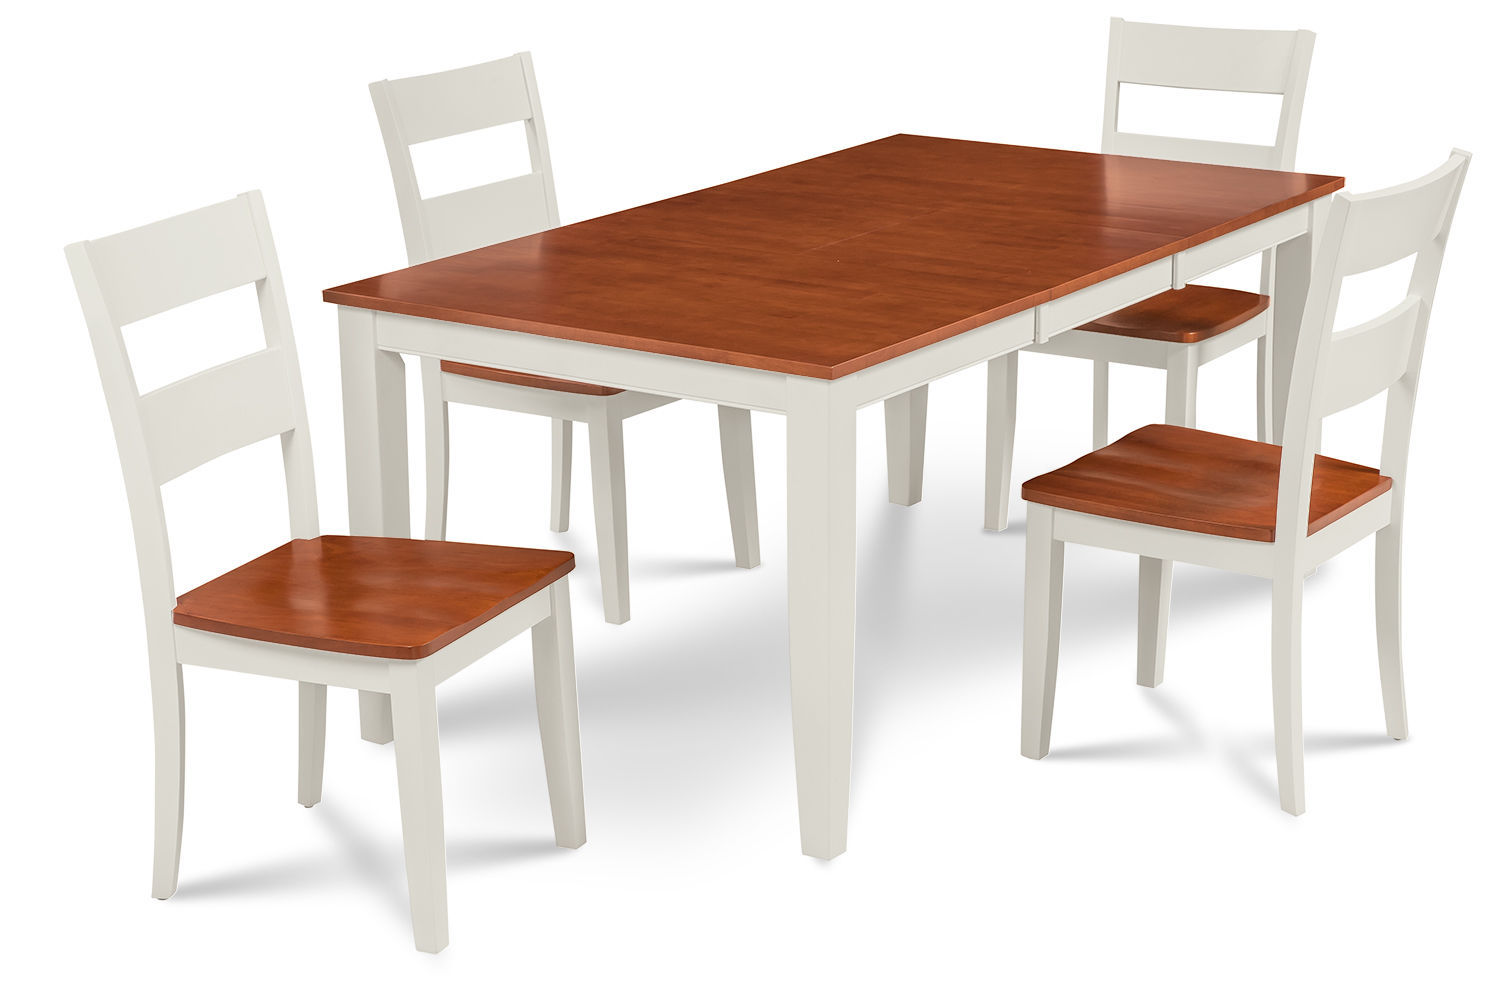 "RECTANGULAR DINING ROOM TABLE SET W/. 18"" LEAF WOOD SEAT CHAIRS, WHITE & CHERRY"